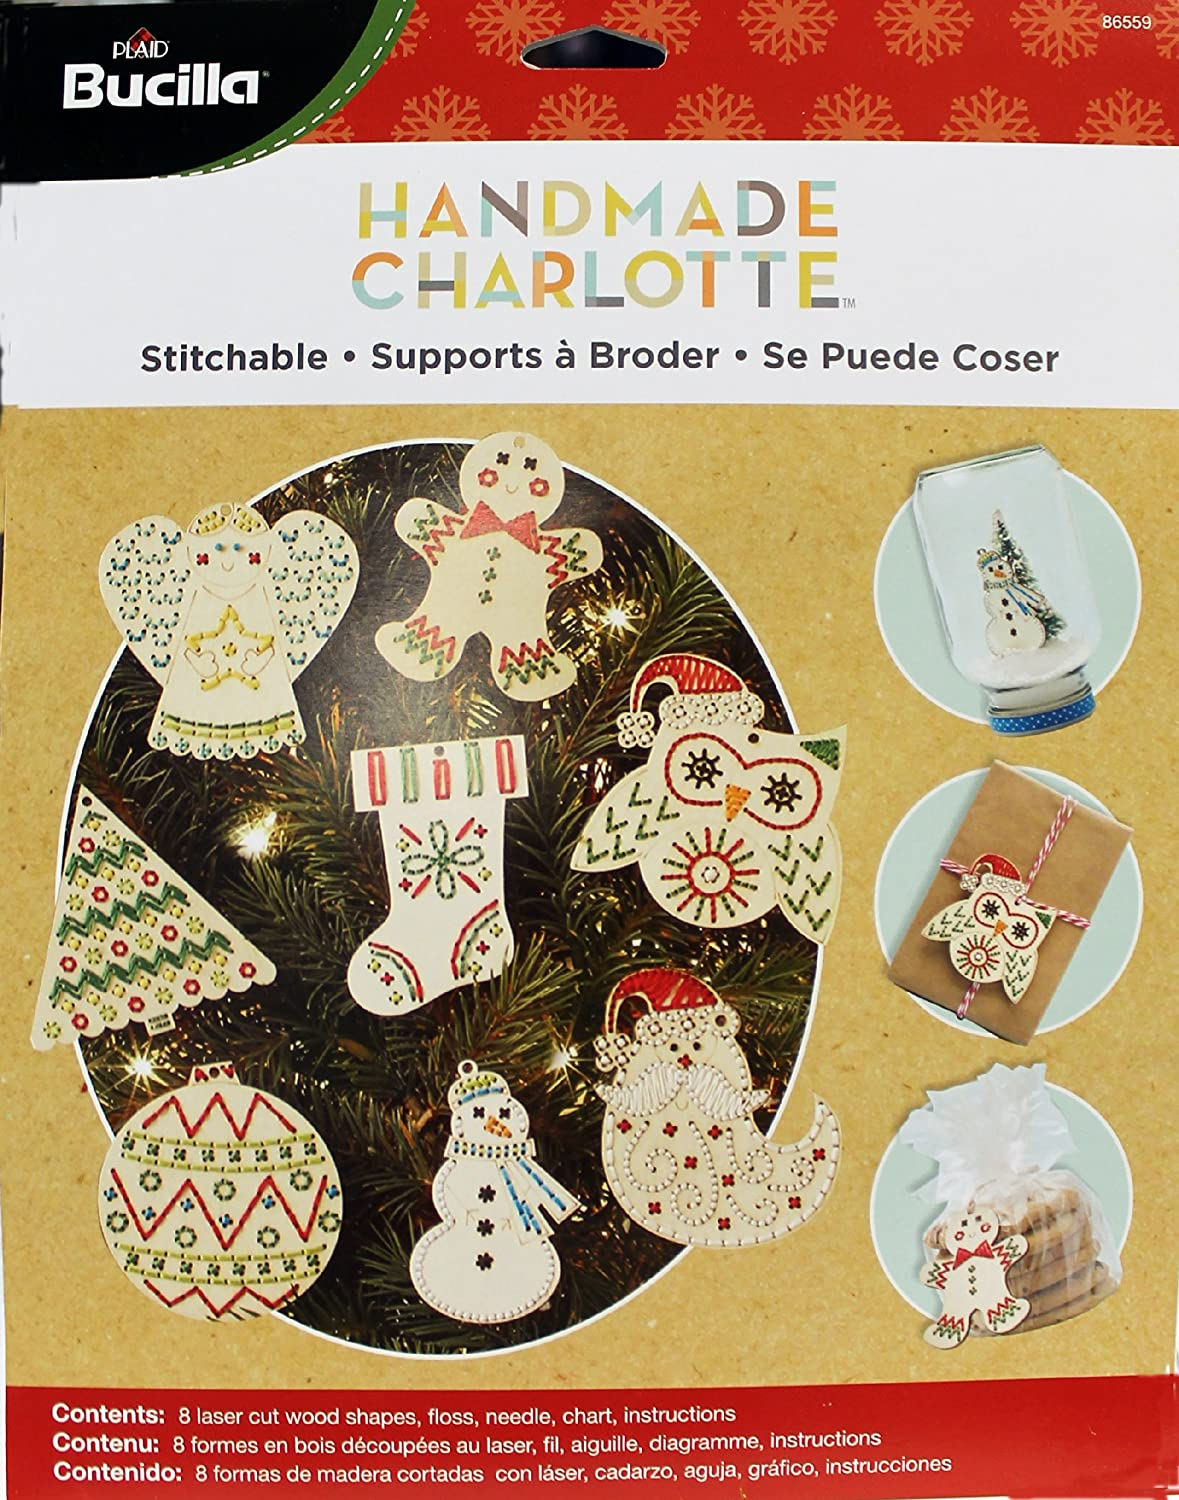 Bucilla Handmade Wood Stitchable Kit, 3 by 3-Inch, 86559 Shapes (Set of 8) Plaid Inc